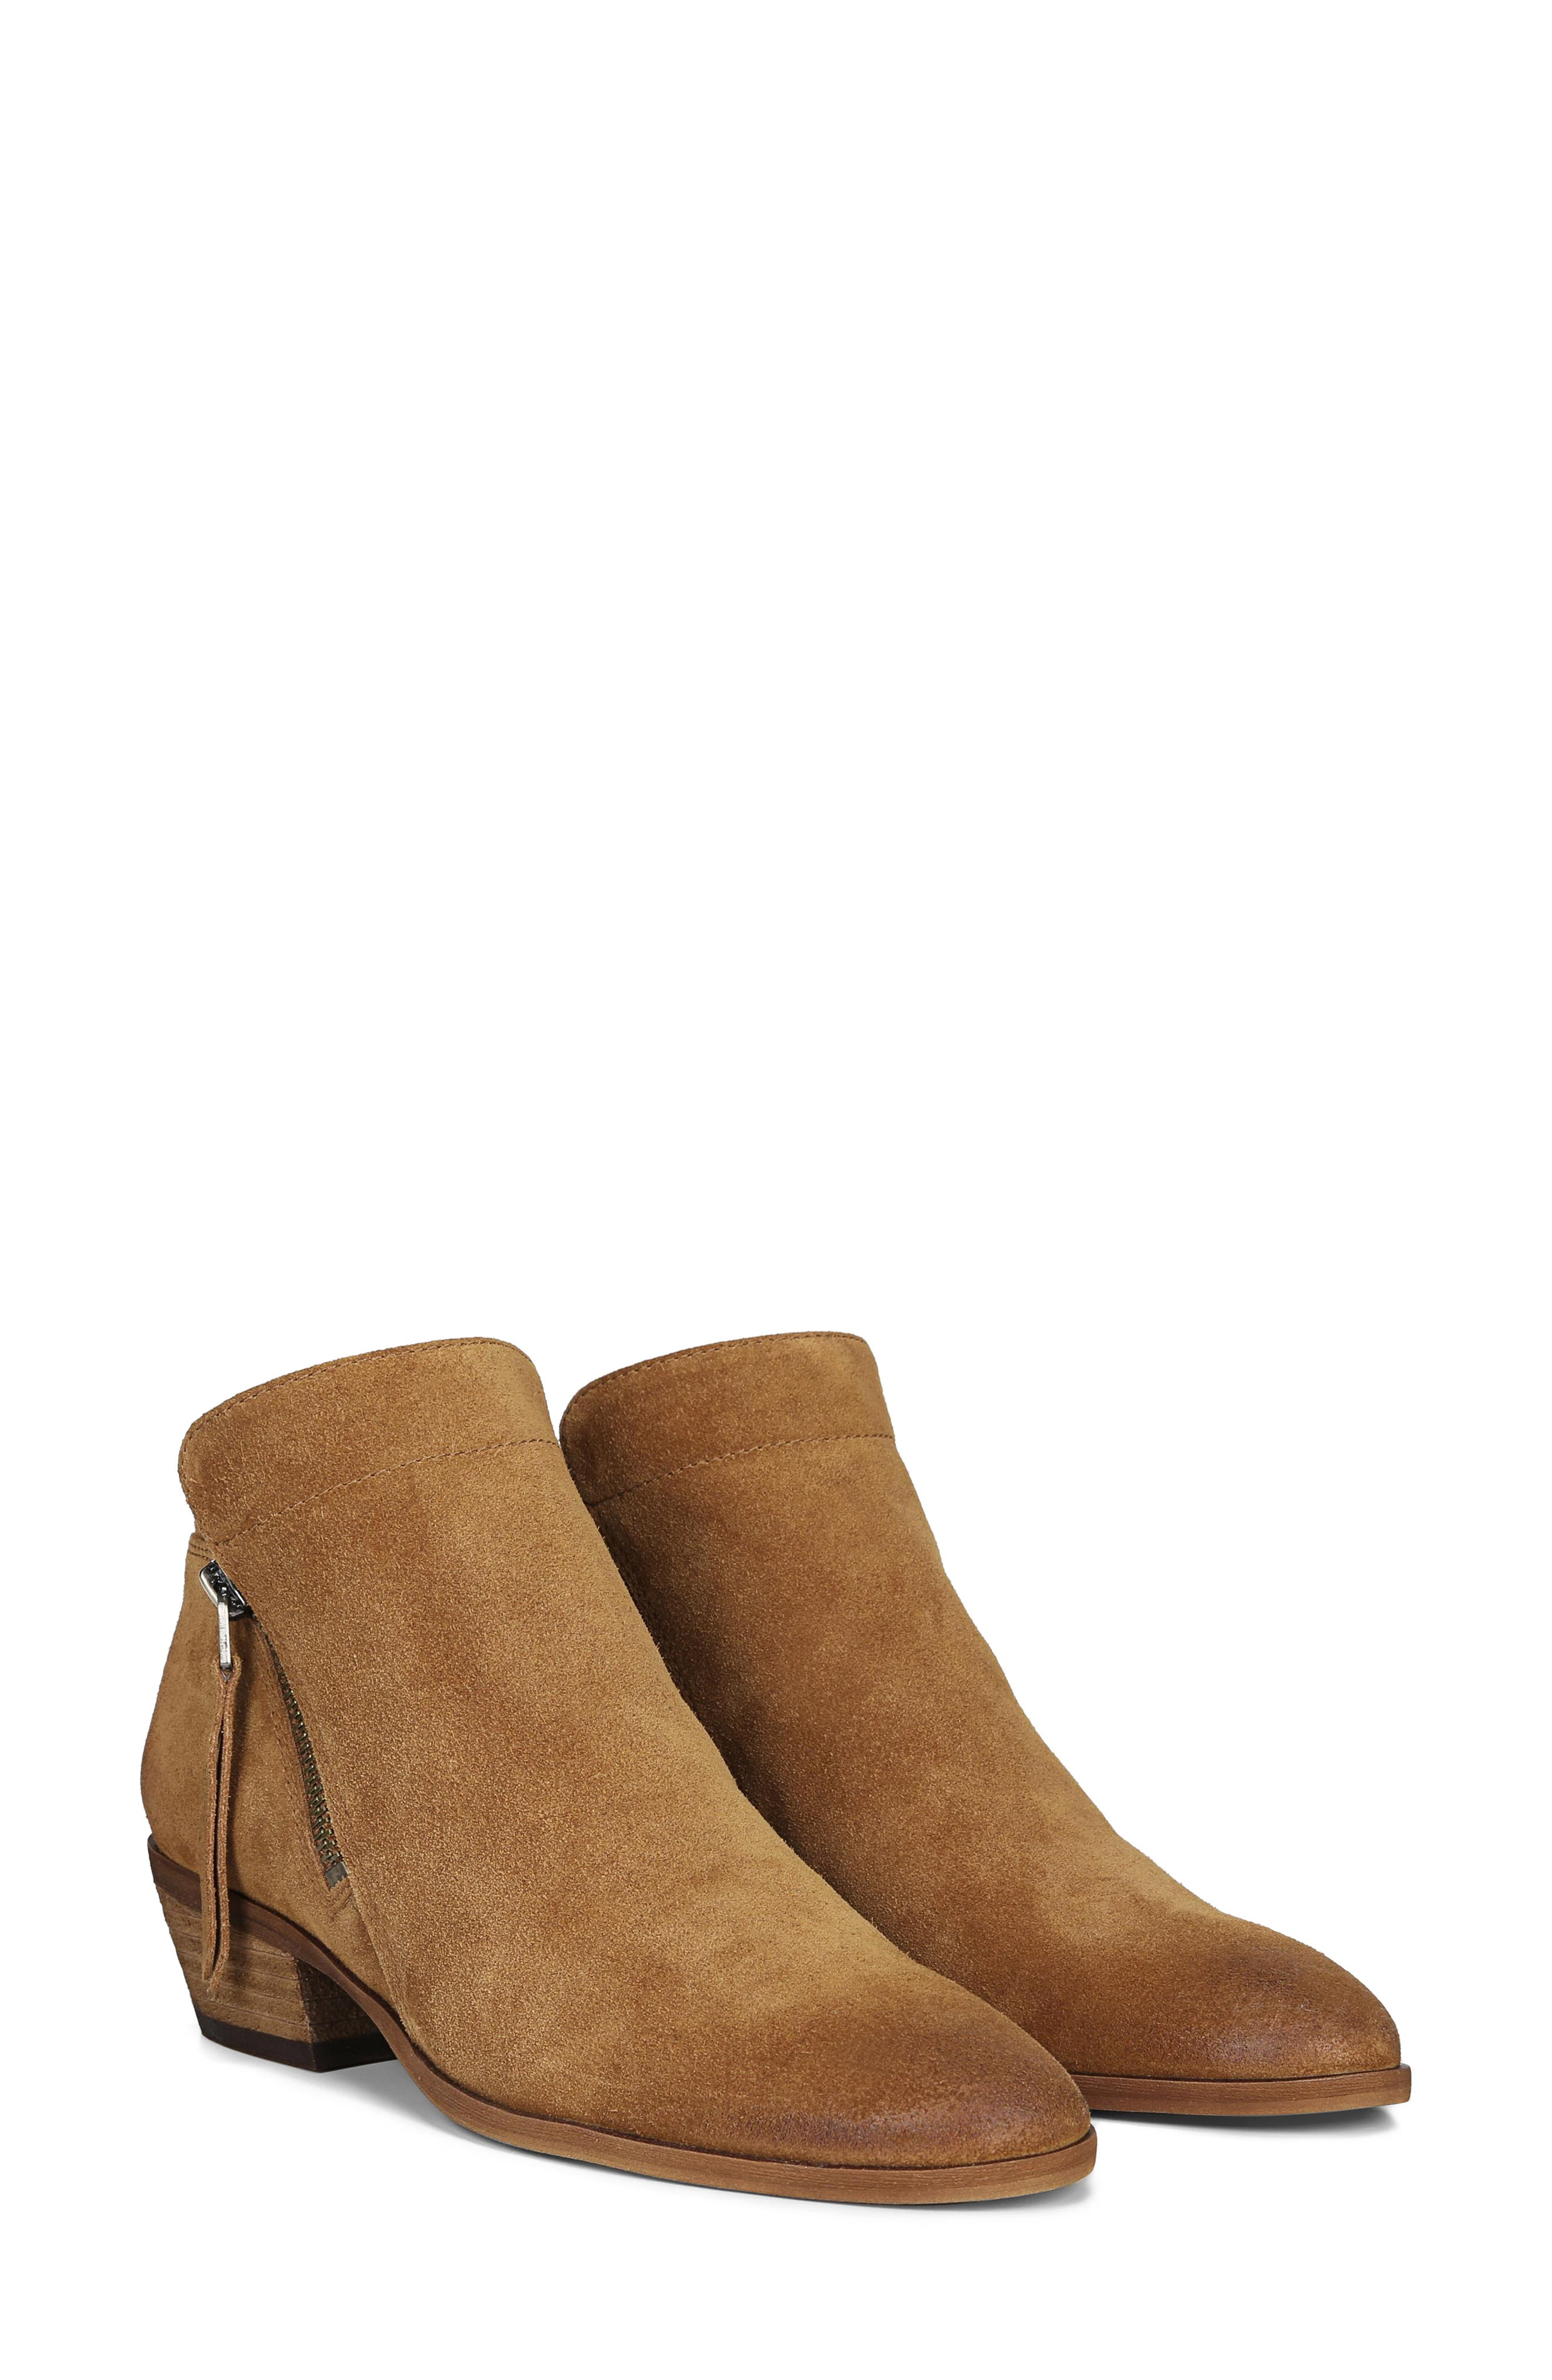 Packer Bootie,                             Alternate thumbnail 9, color,                             LUGGAGE SUEDE LEATHER